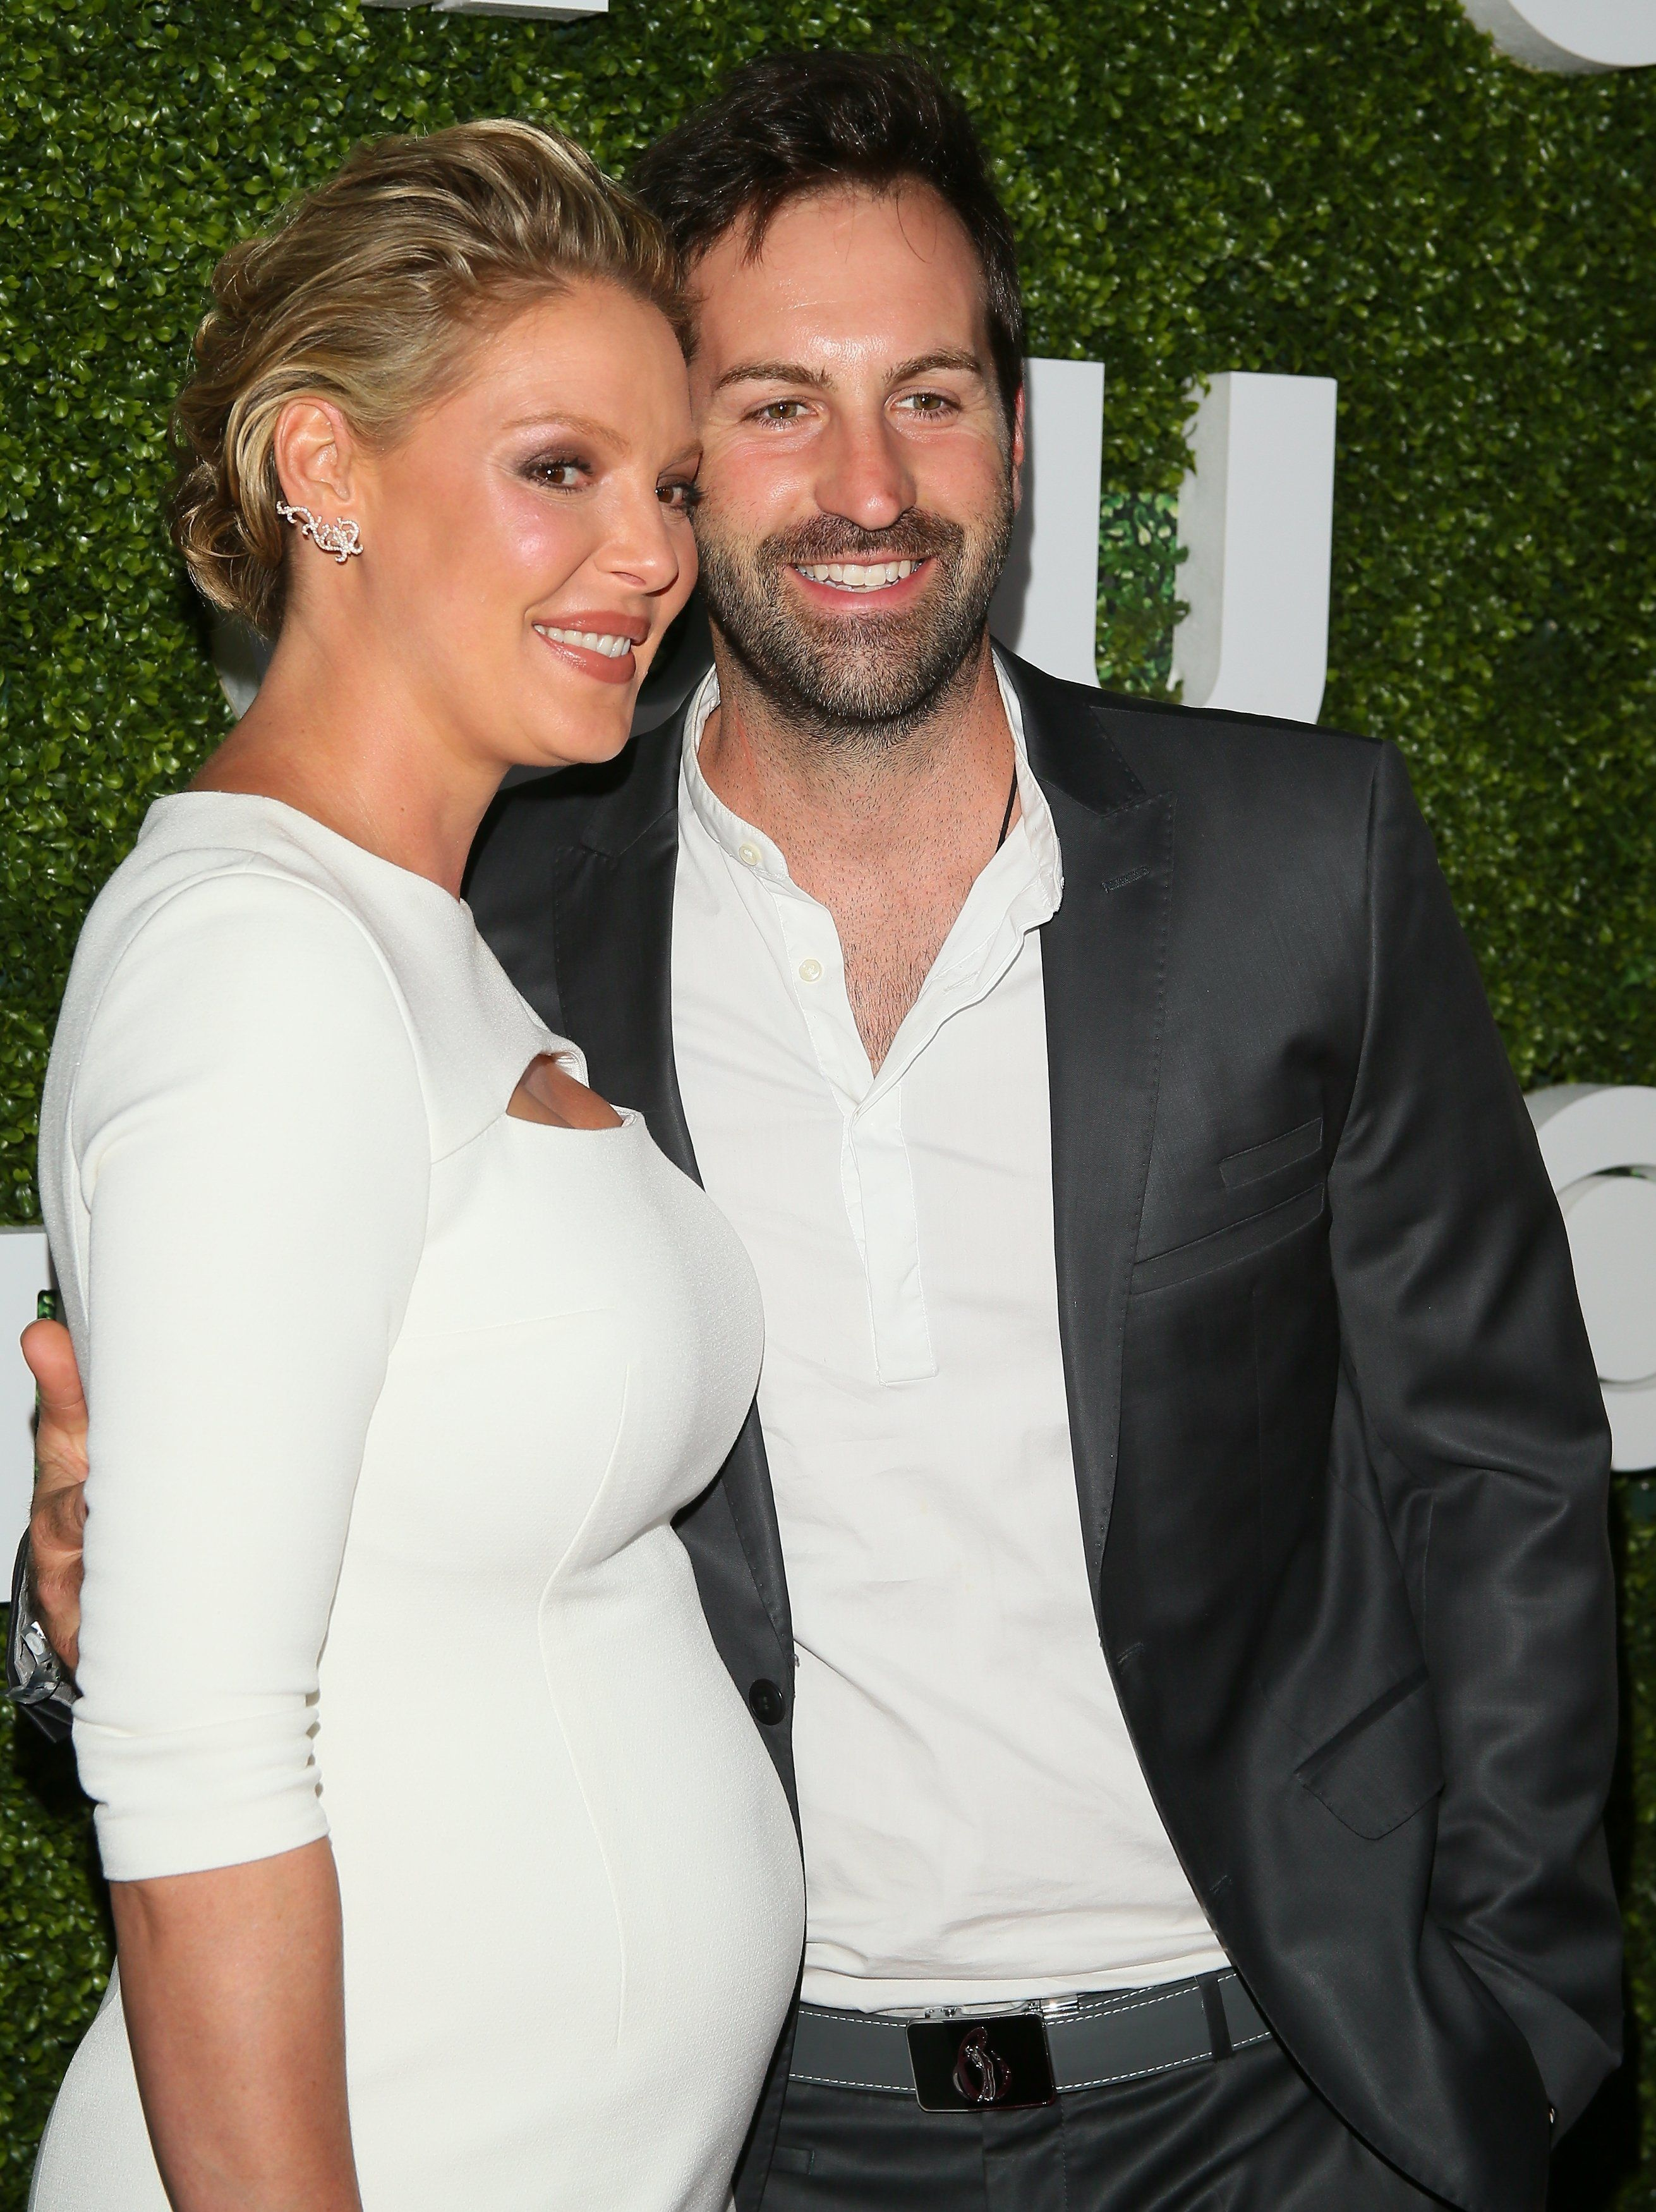 WEST HOLLYWOOD, CA - AUGUST 10: Actress Katherine Heigl and Josh Kelley attend the CBS, CW, Showtime Summer TCA Party at Pacific Design Center on August 10, 2016 in West Hollywood, California. (Photo by JB Lacroix/WireImage)